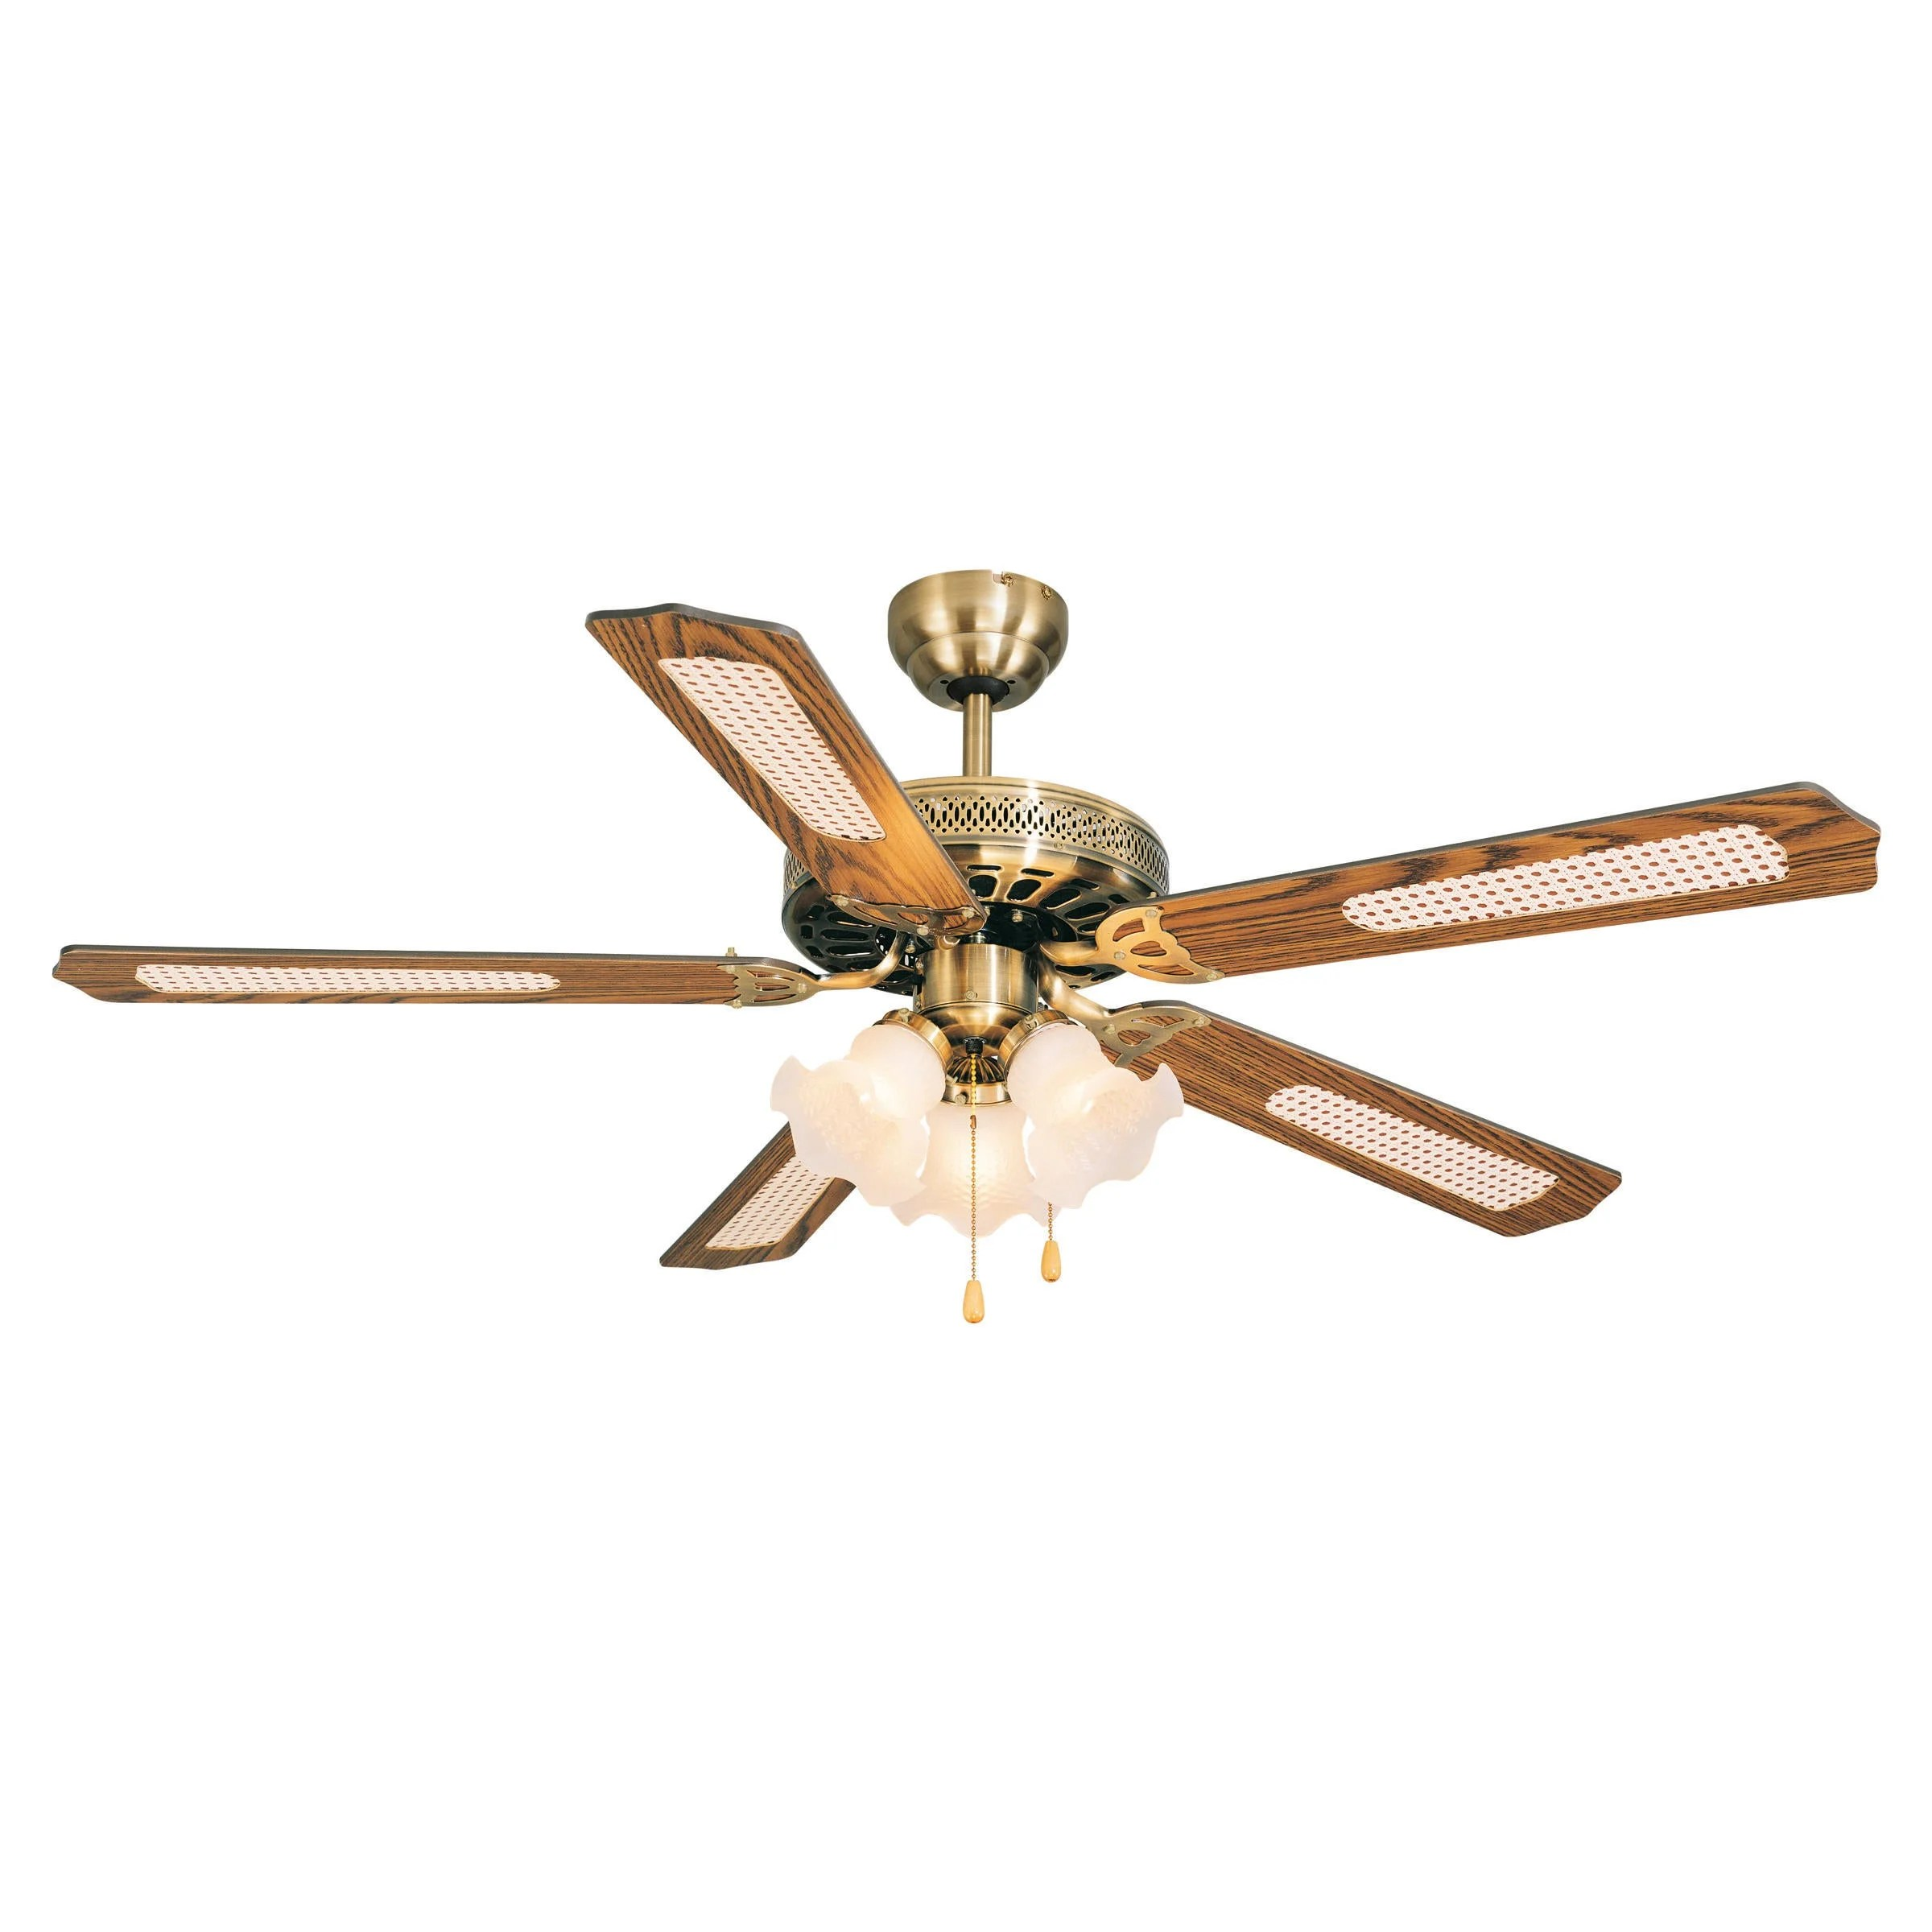 Get the best of shopping and entertainment with prime. Ventilatore Da Soffitto Reunion Rovere Rovere Paglia D 132 Cm Inspire Leroy Merlin